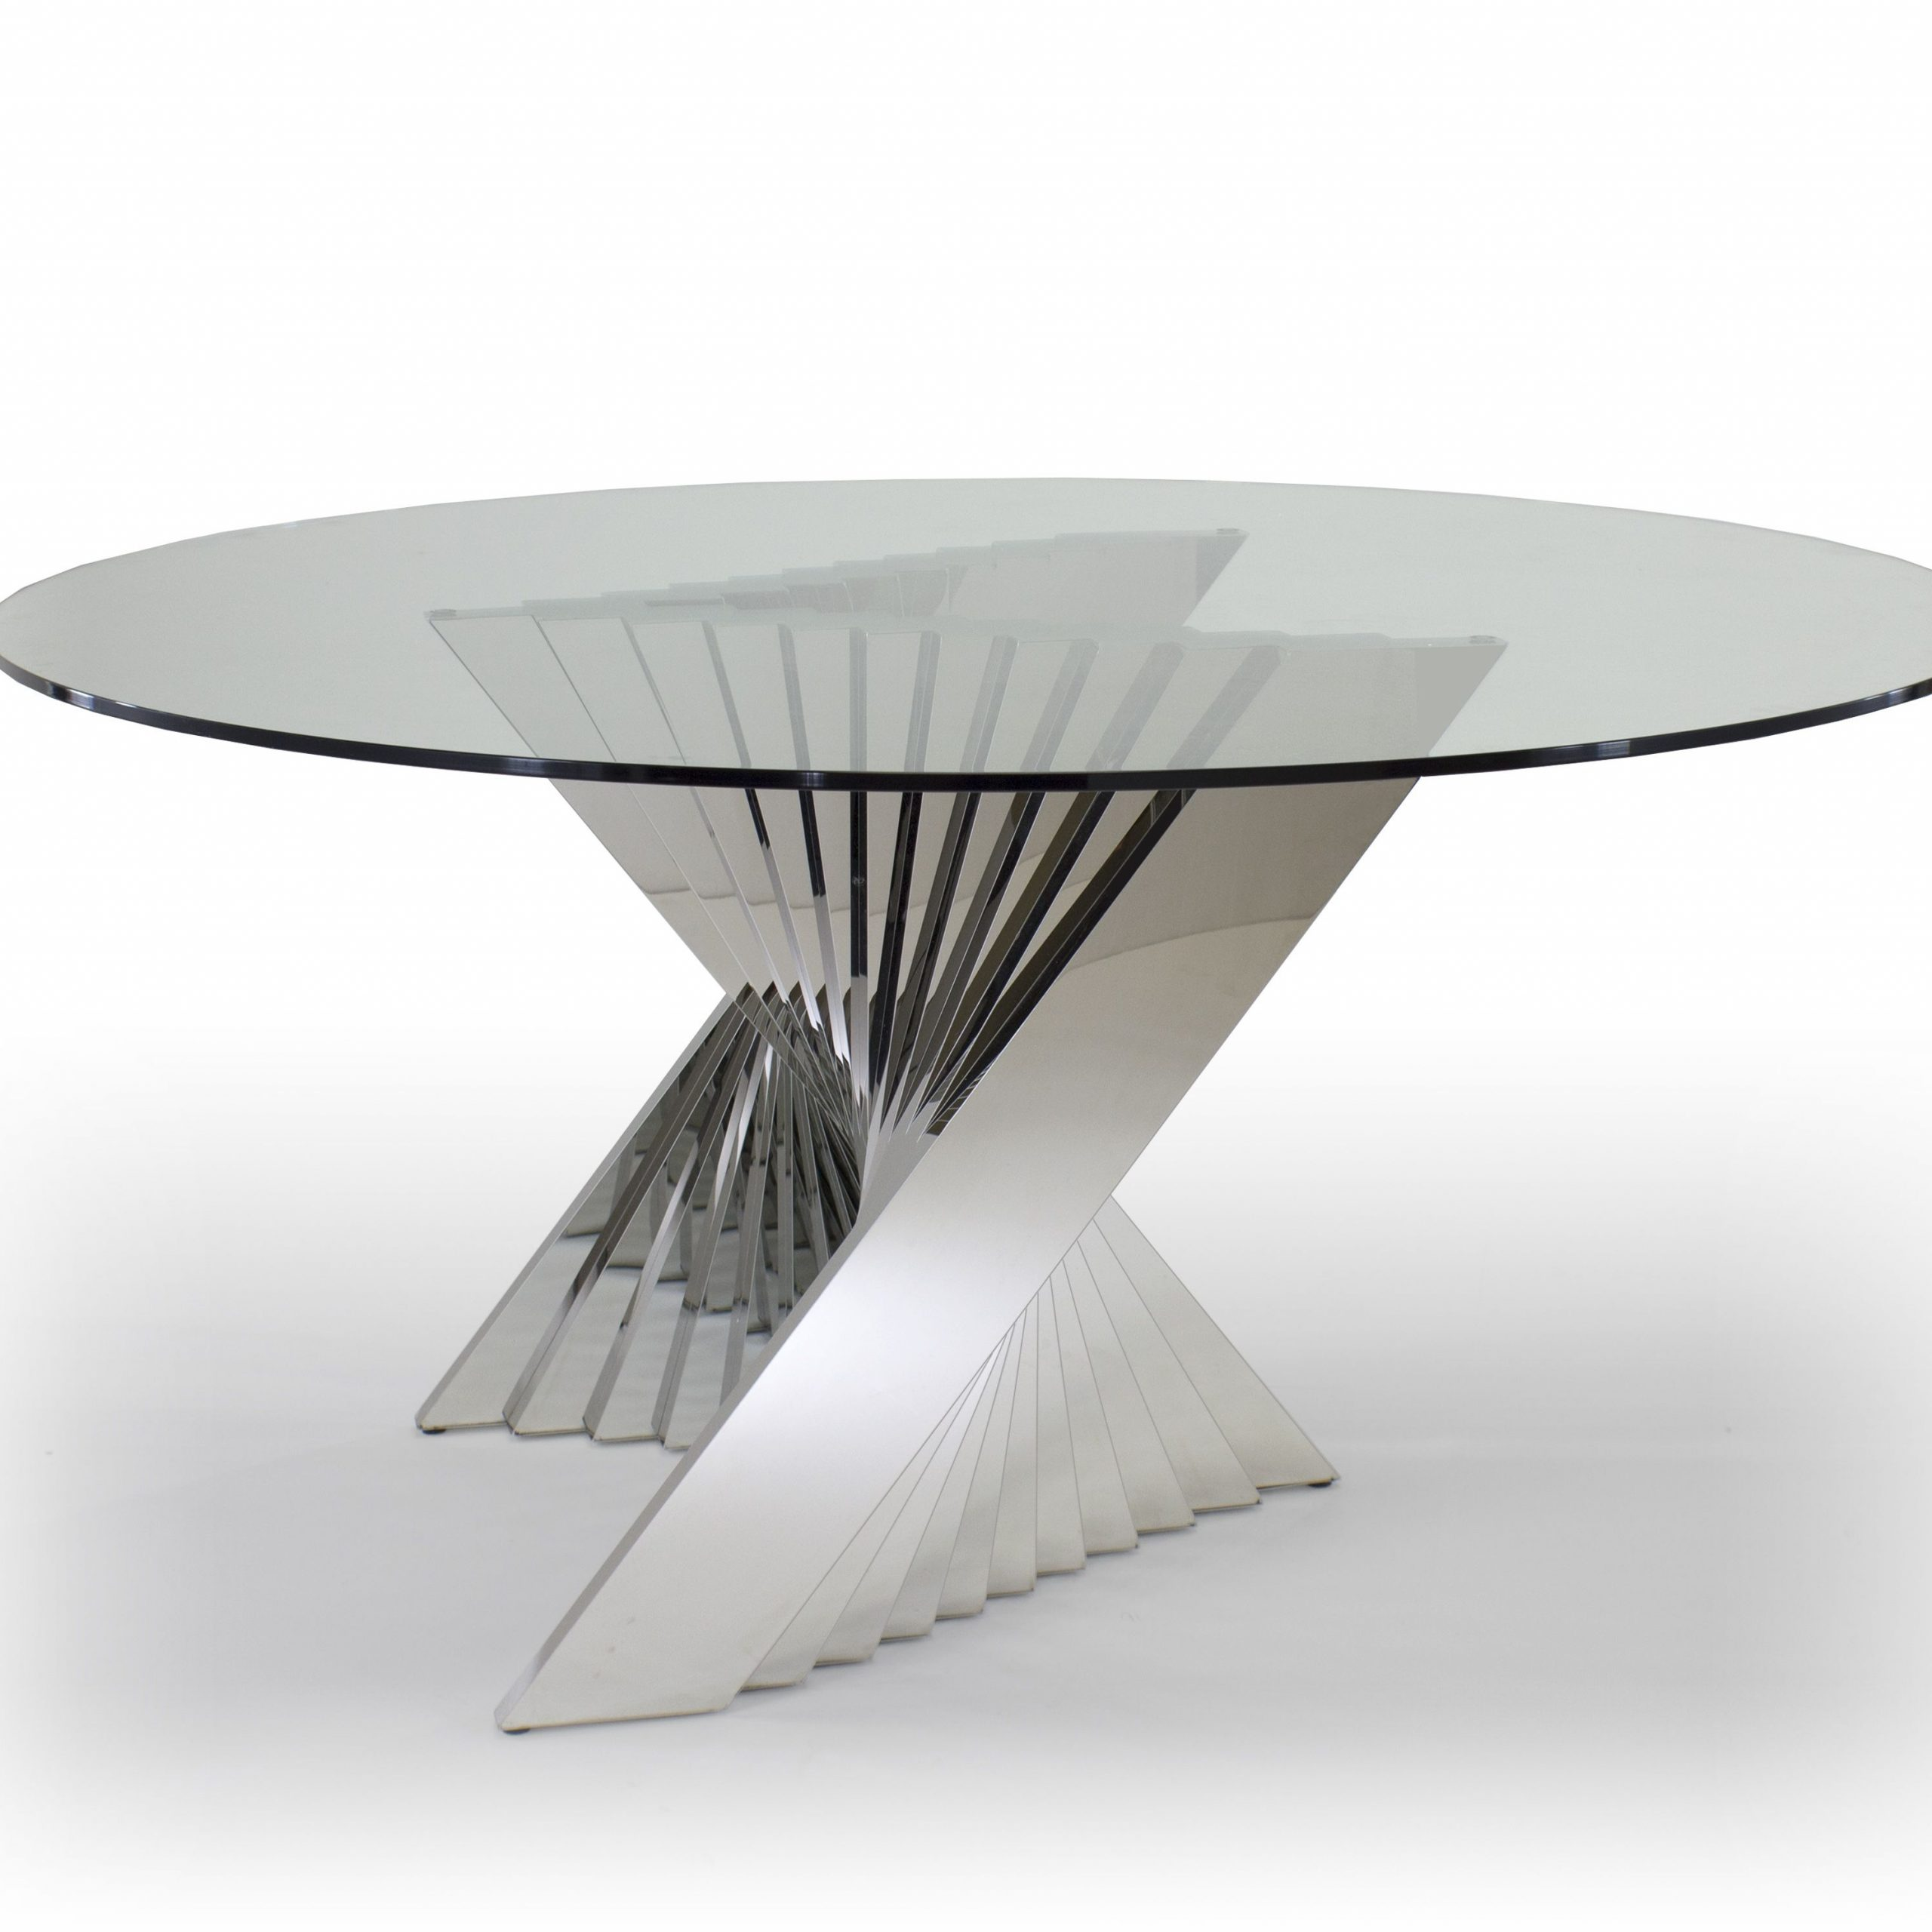 Modern Round Glass Top Dining Tables Pertaining To Most Current Ace Dining Table – Round Glass Top And Metal Base Dining (View 4 of 25)